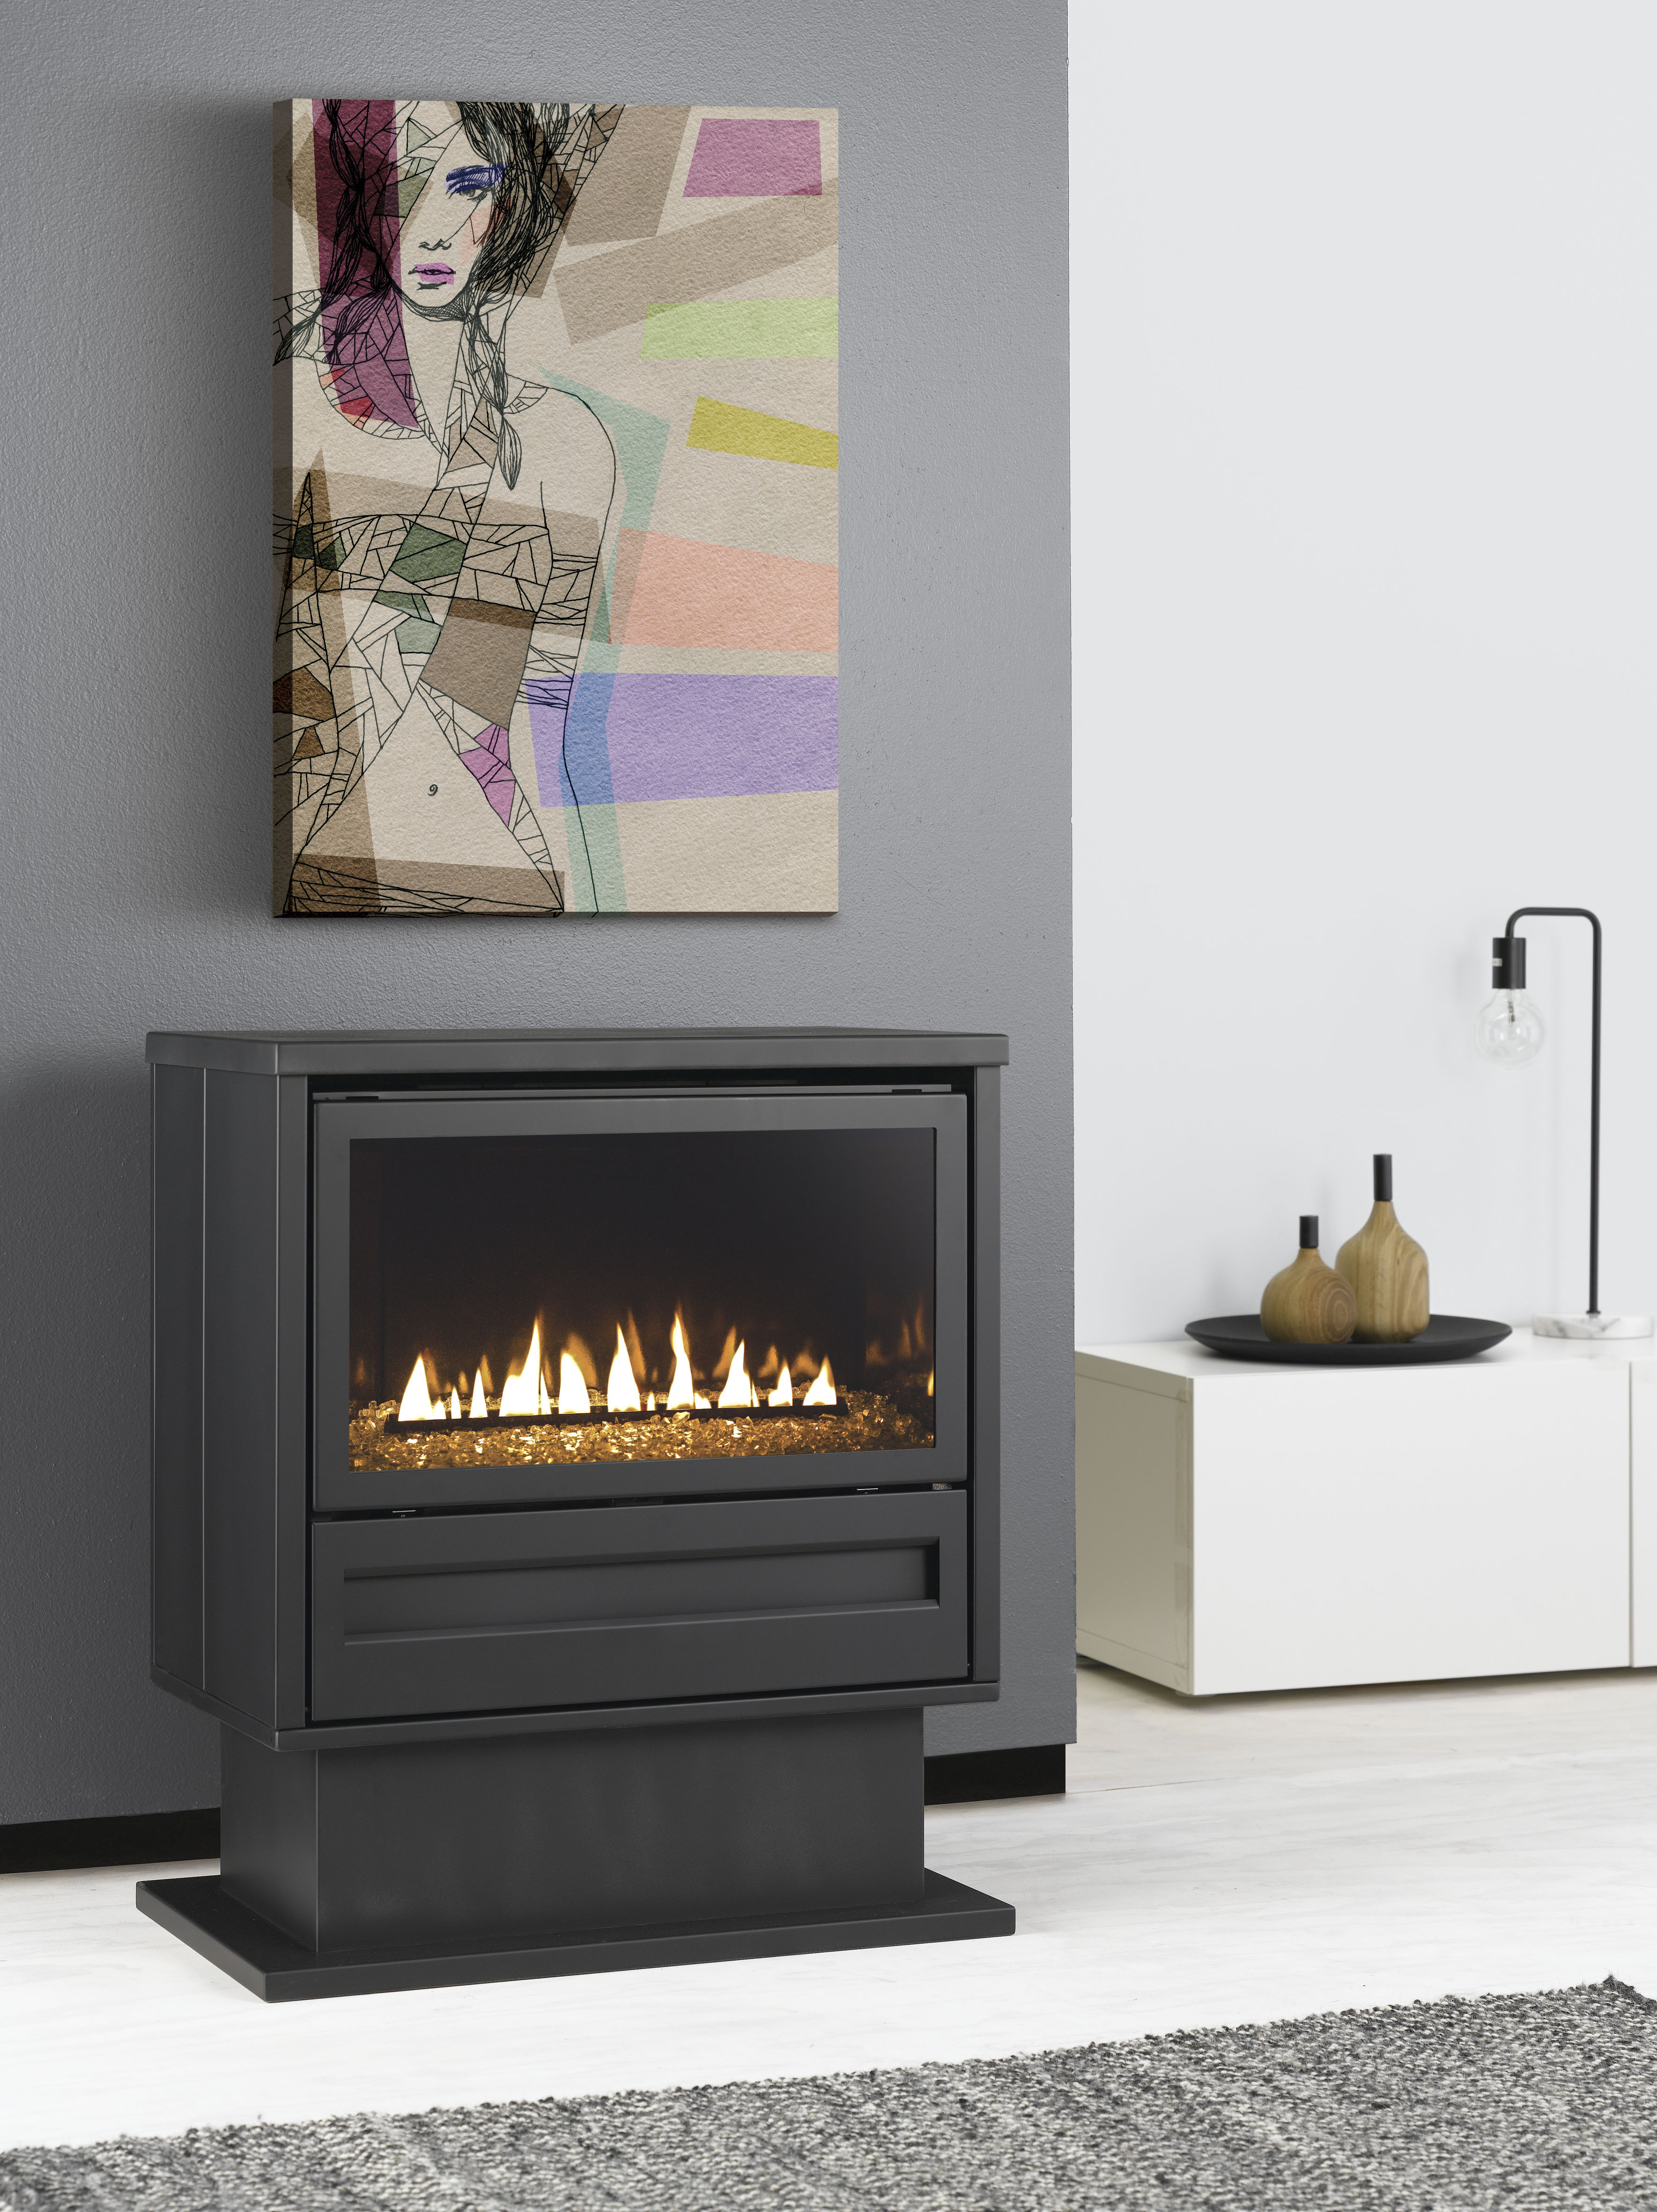 The Archer: More heat, less energy, lower bills - single burner